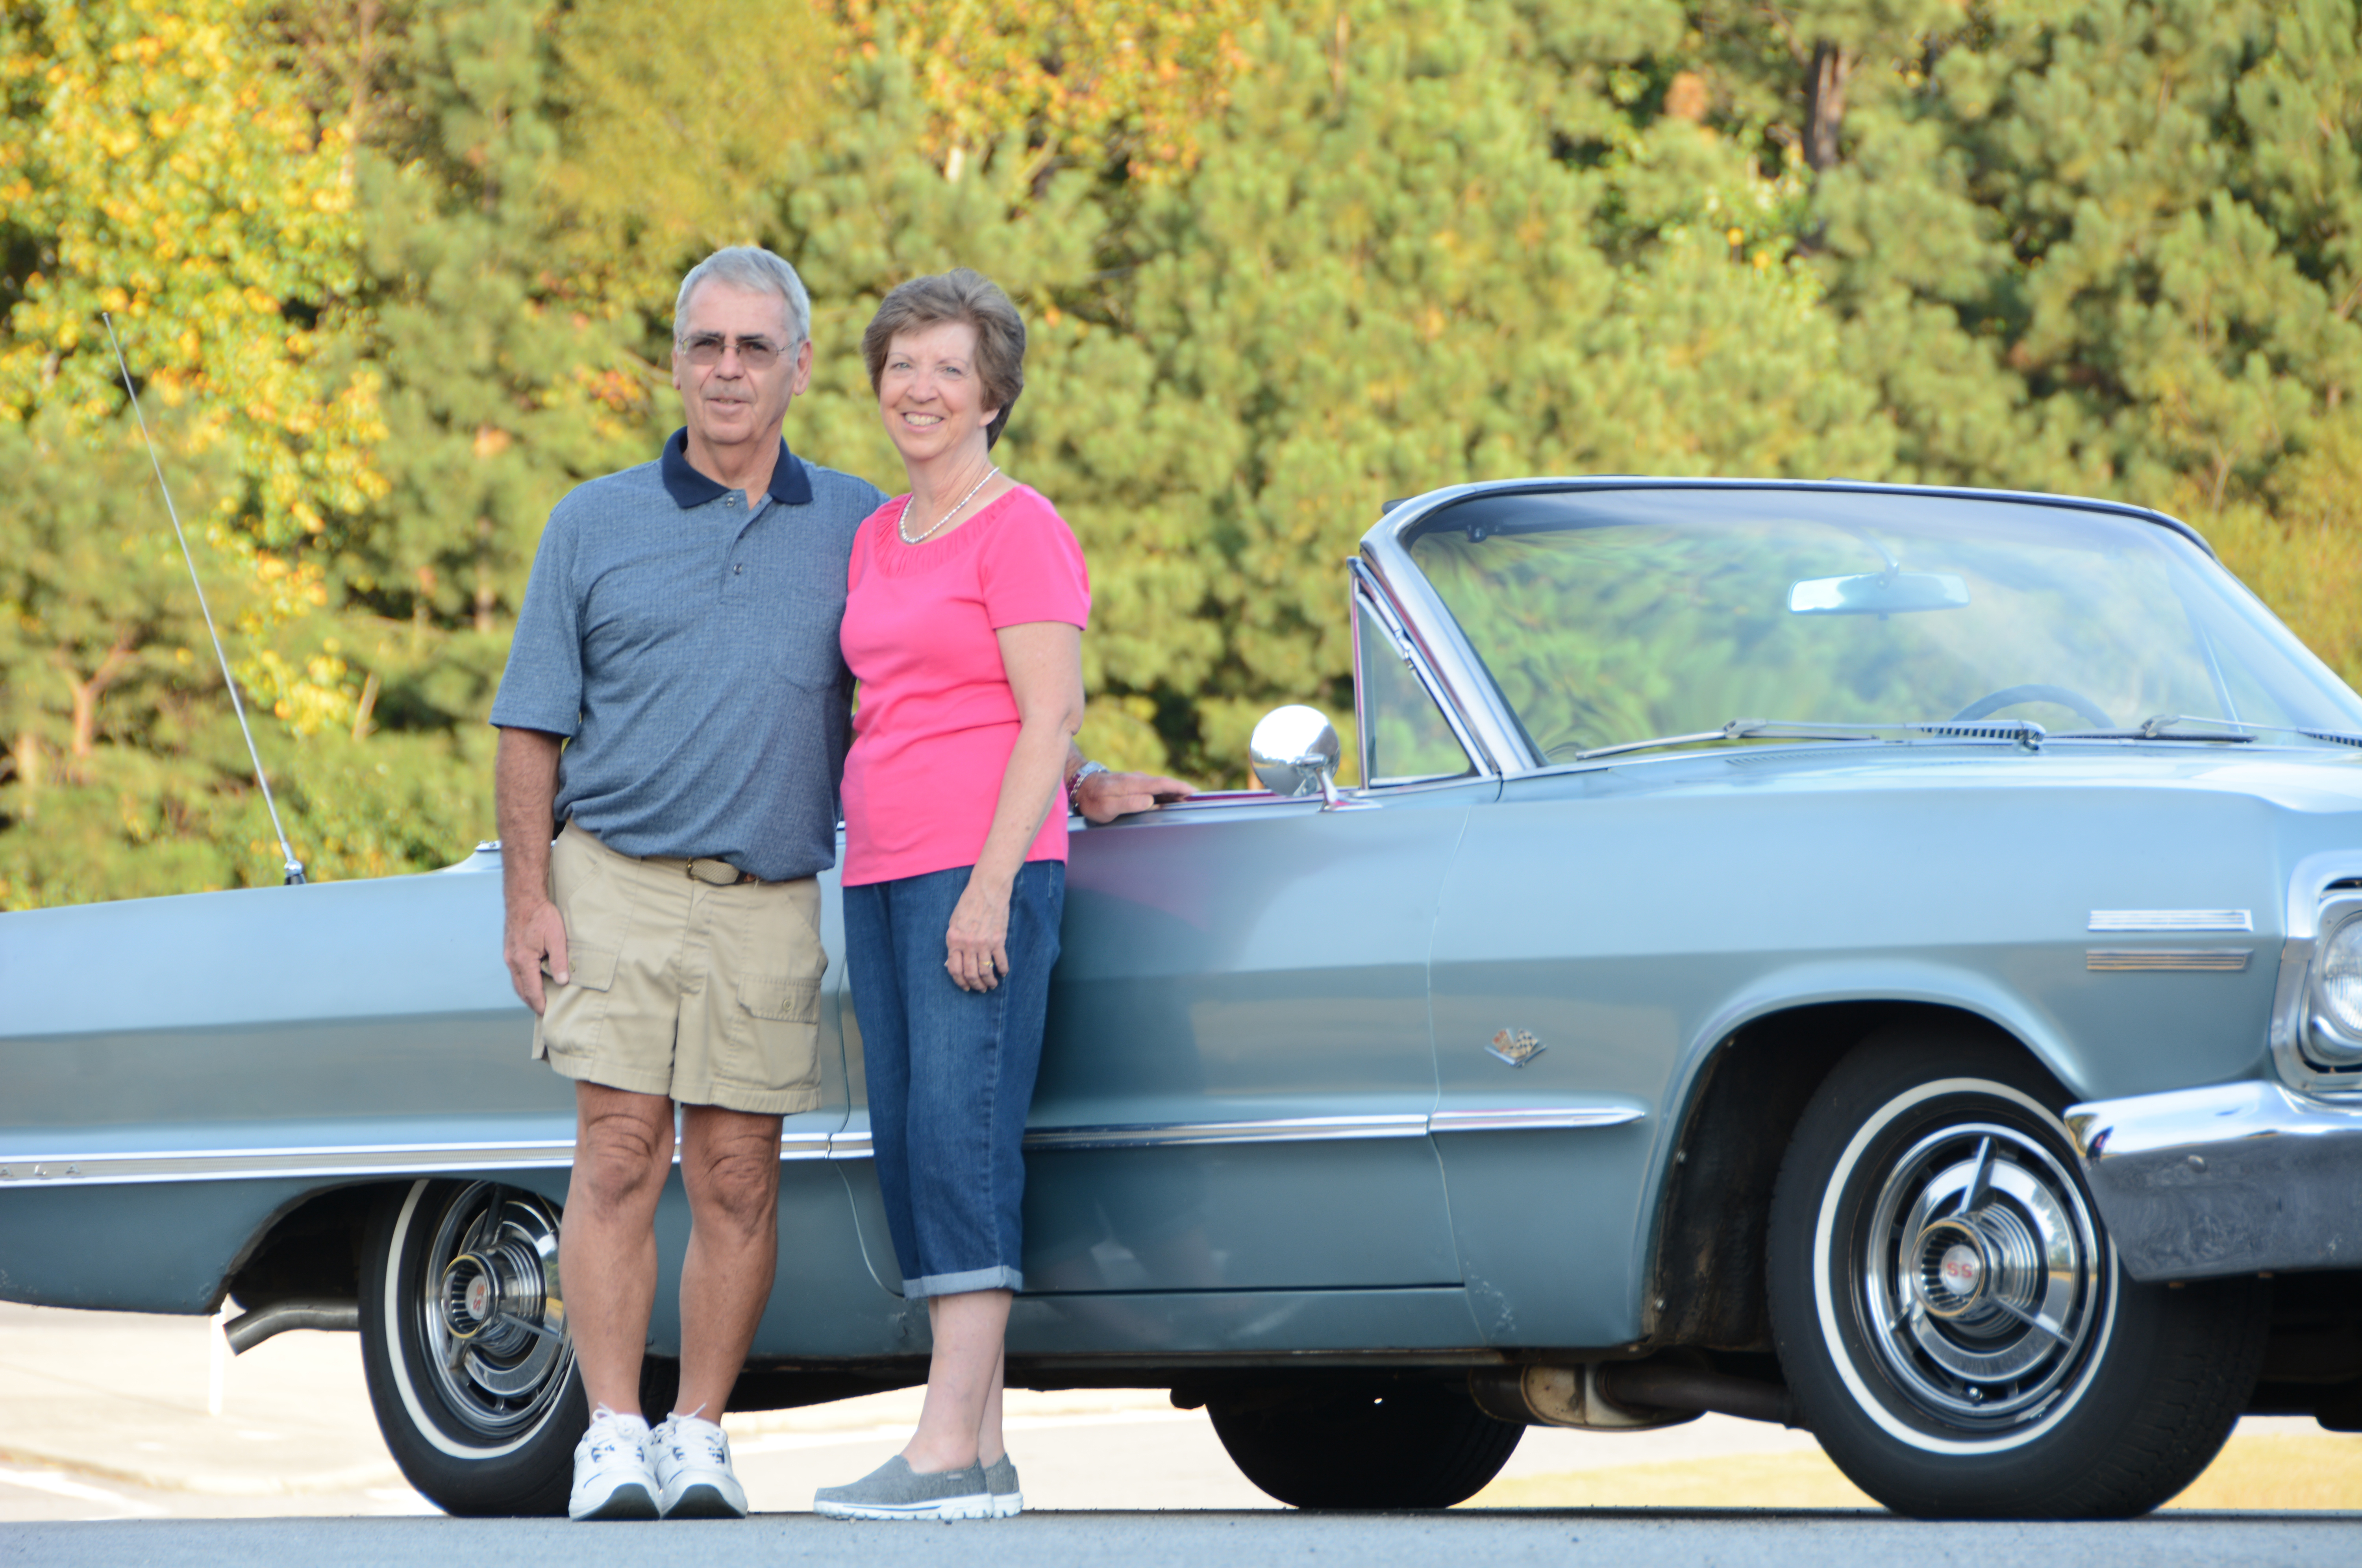 Charles and Peggy went on their first date in Ol' Blue (Peggy refers to the car as Chug-a-Lug), and they recently celebrated their 40th wedding anniversary. The car drove them away from the wedding and also drove them to the hospital for the birth of their three daughters, Jennifer, Kimberly, and Christina.